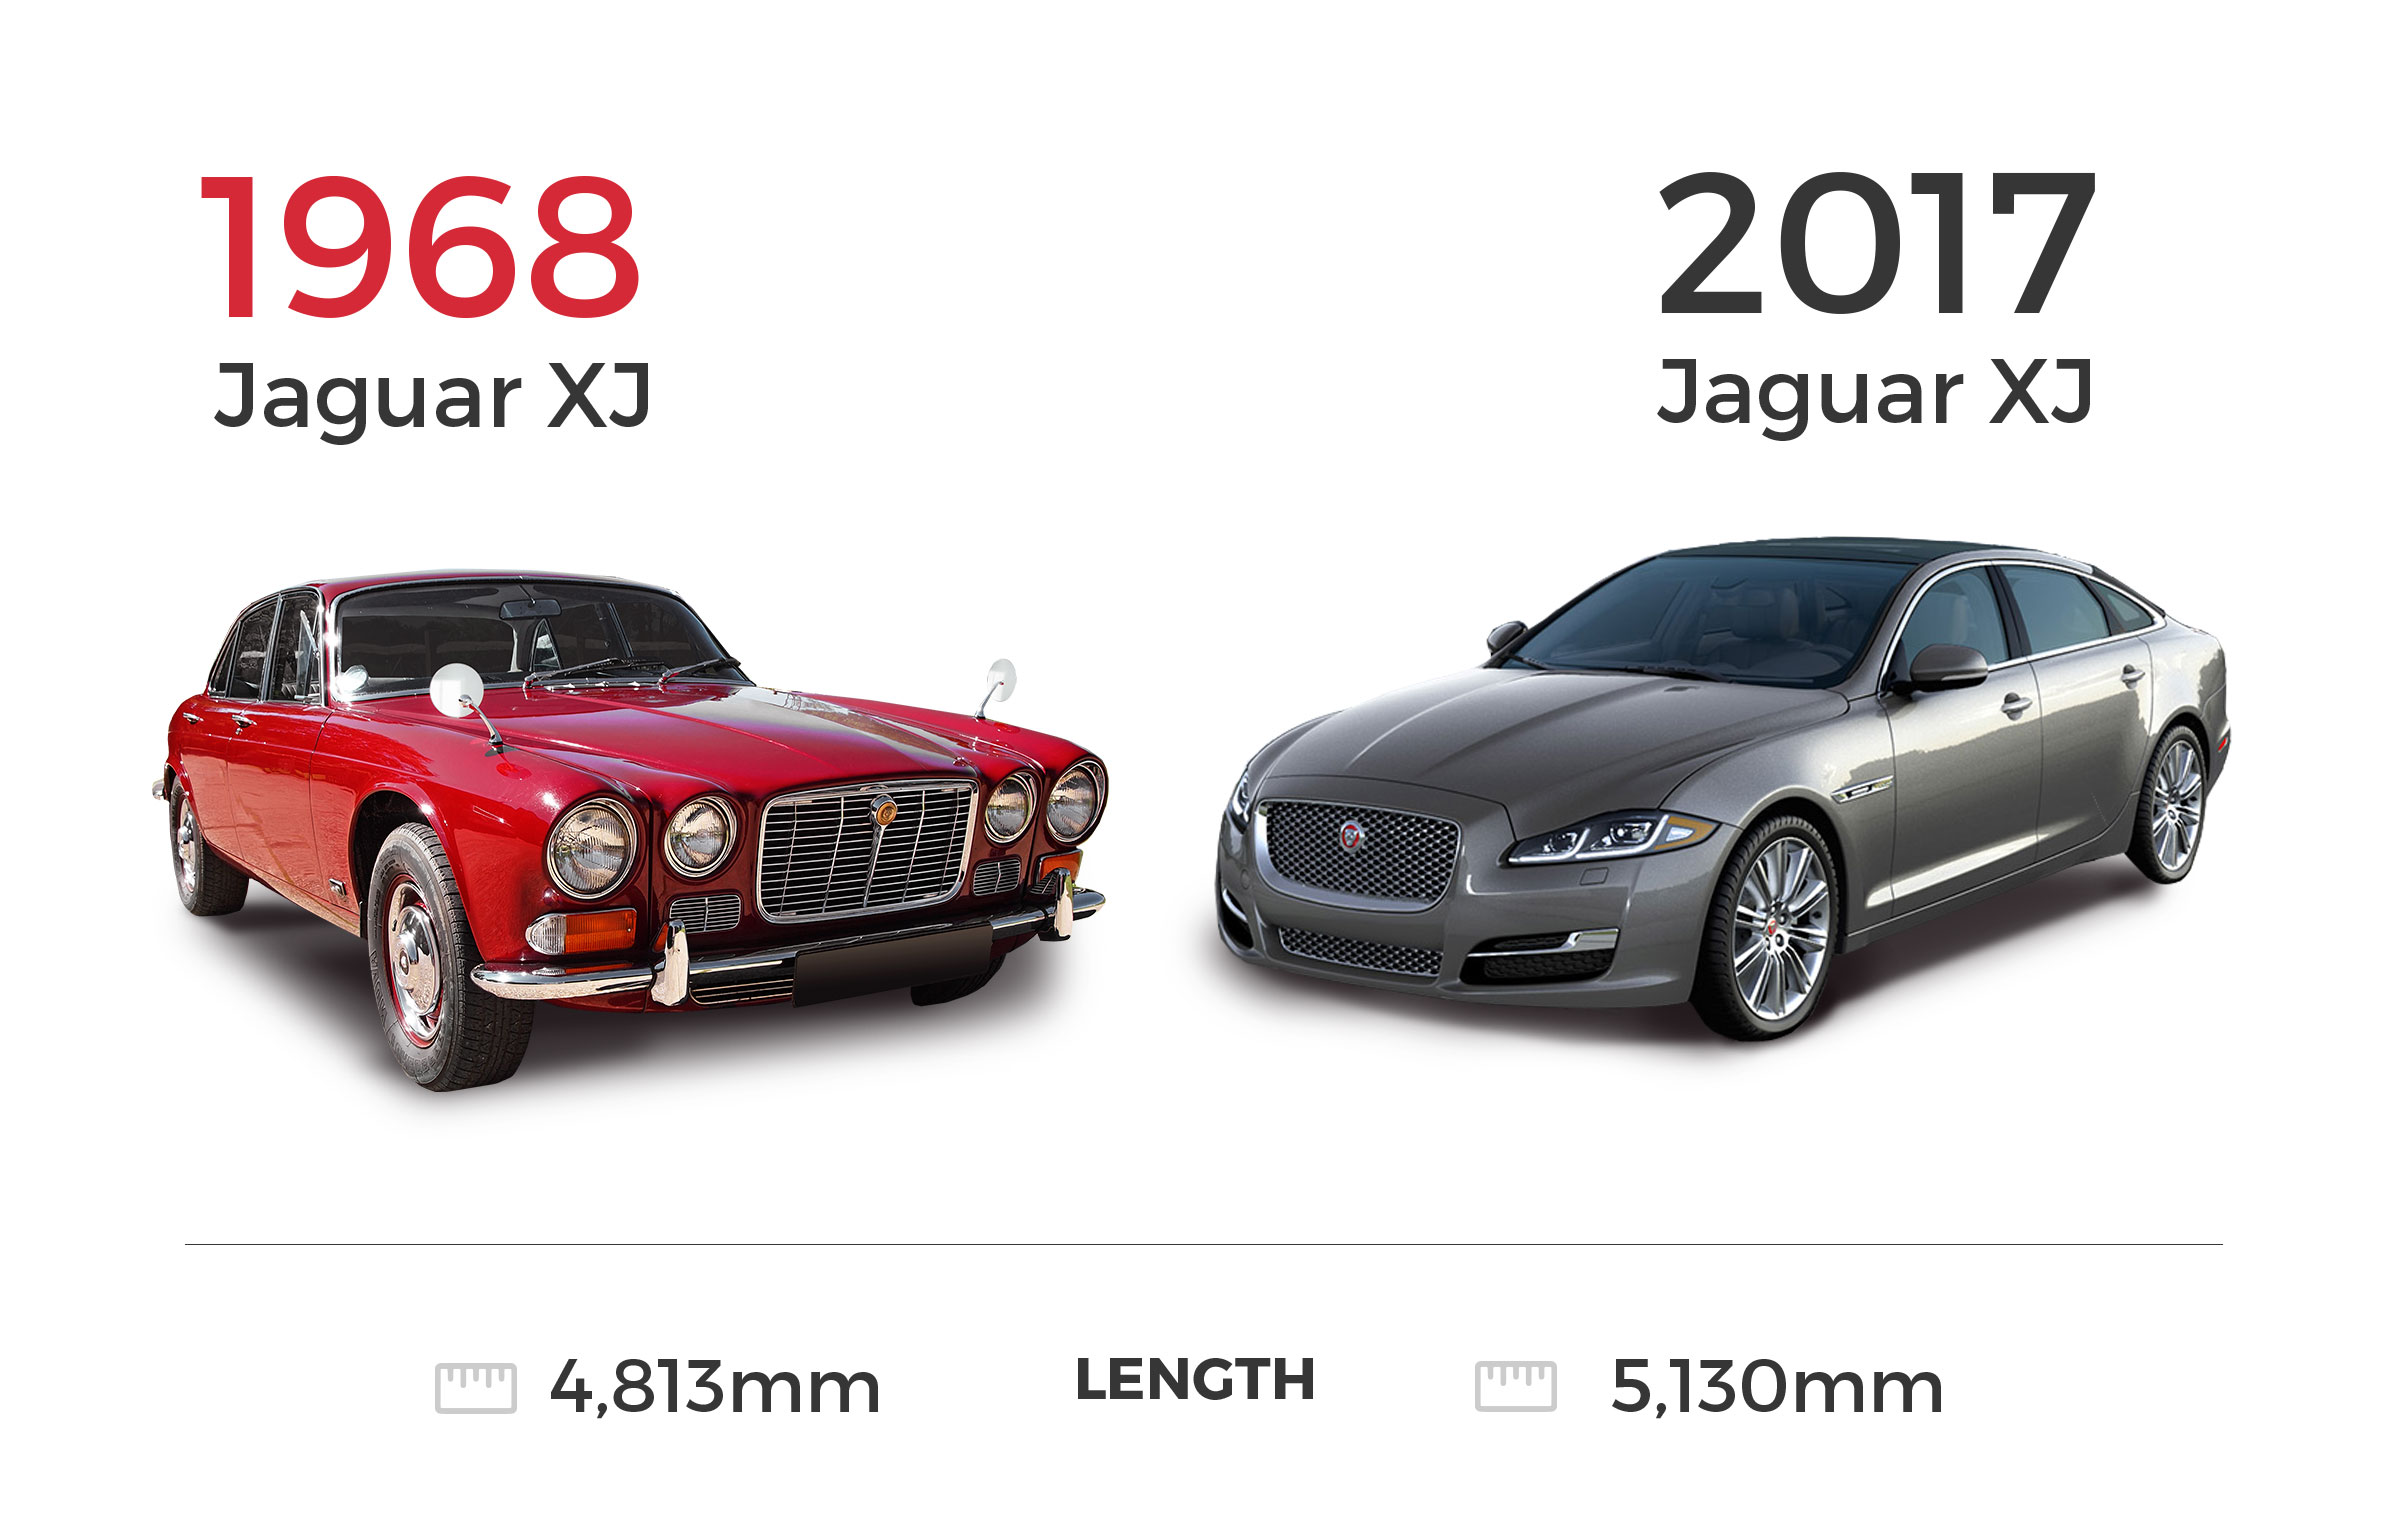 Image comparing 1968 Jaguar XJ model and 2017 Jaguar XJ model